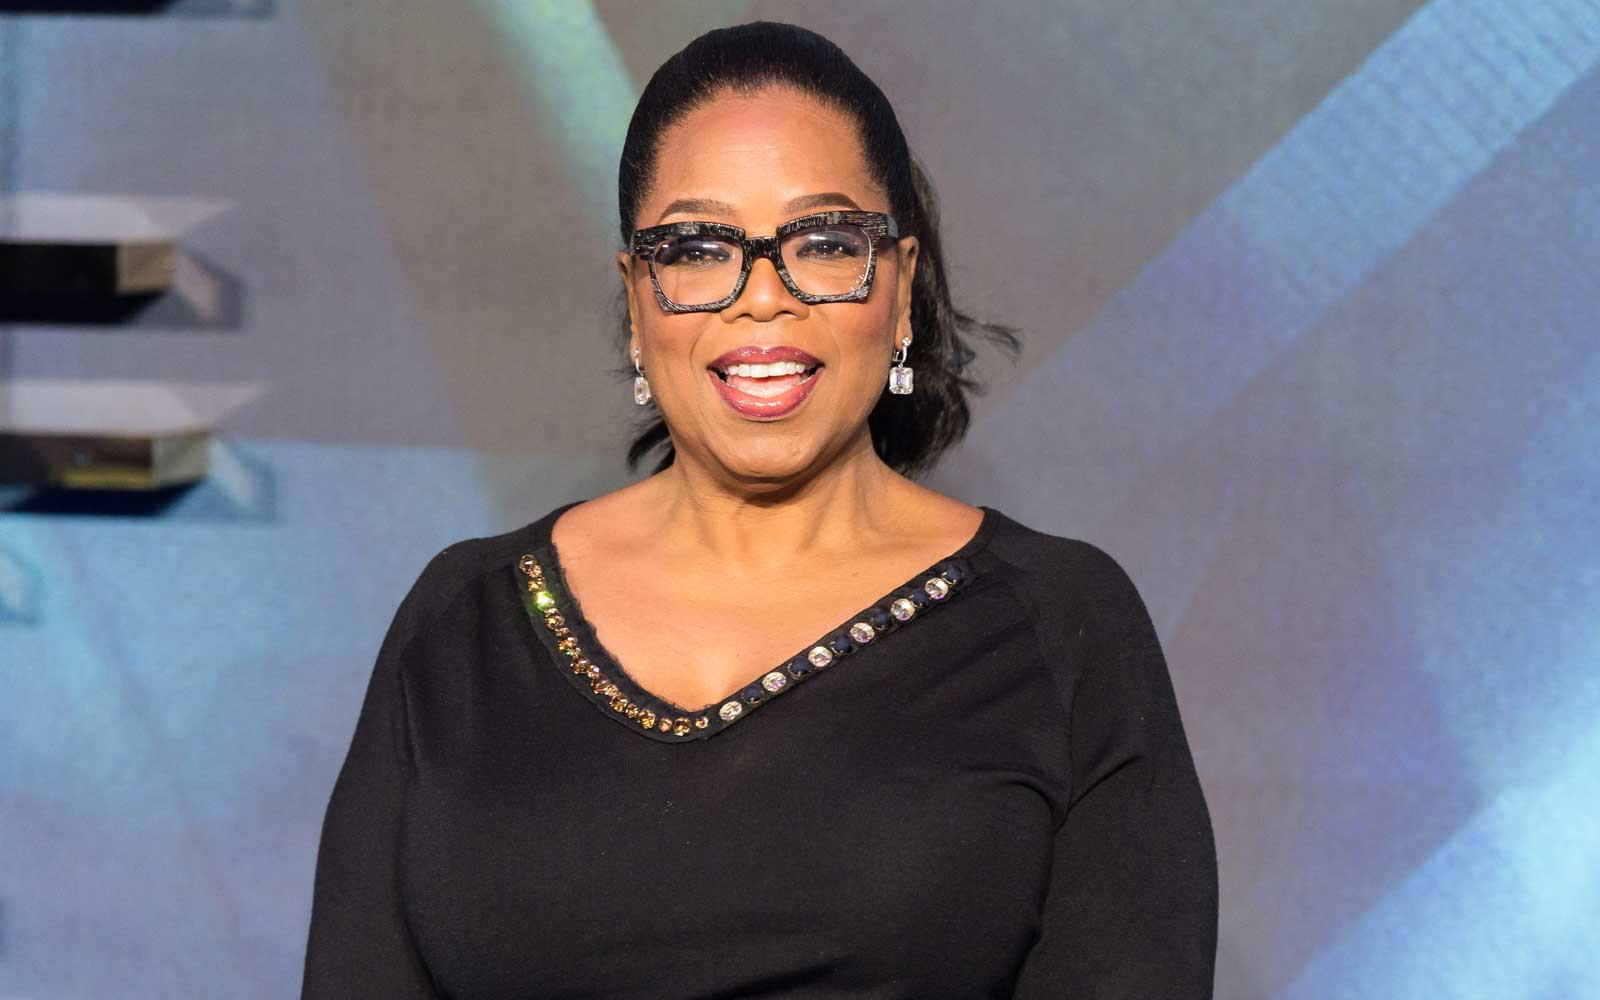 The One Incident That Made Oprah Swear Off Commercial Flights and Buy Her Own Plane